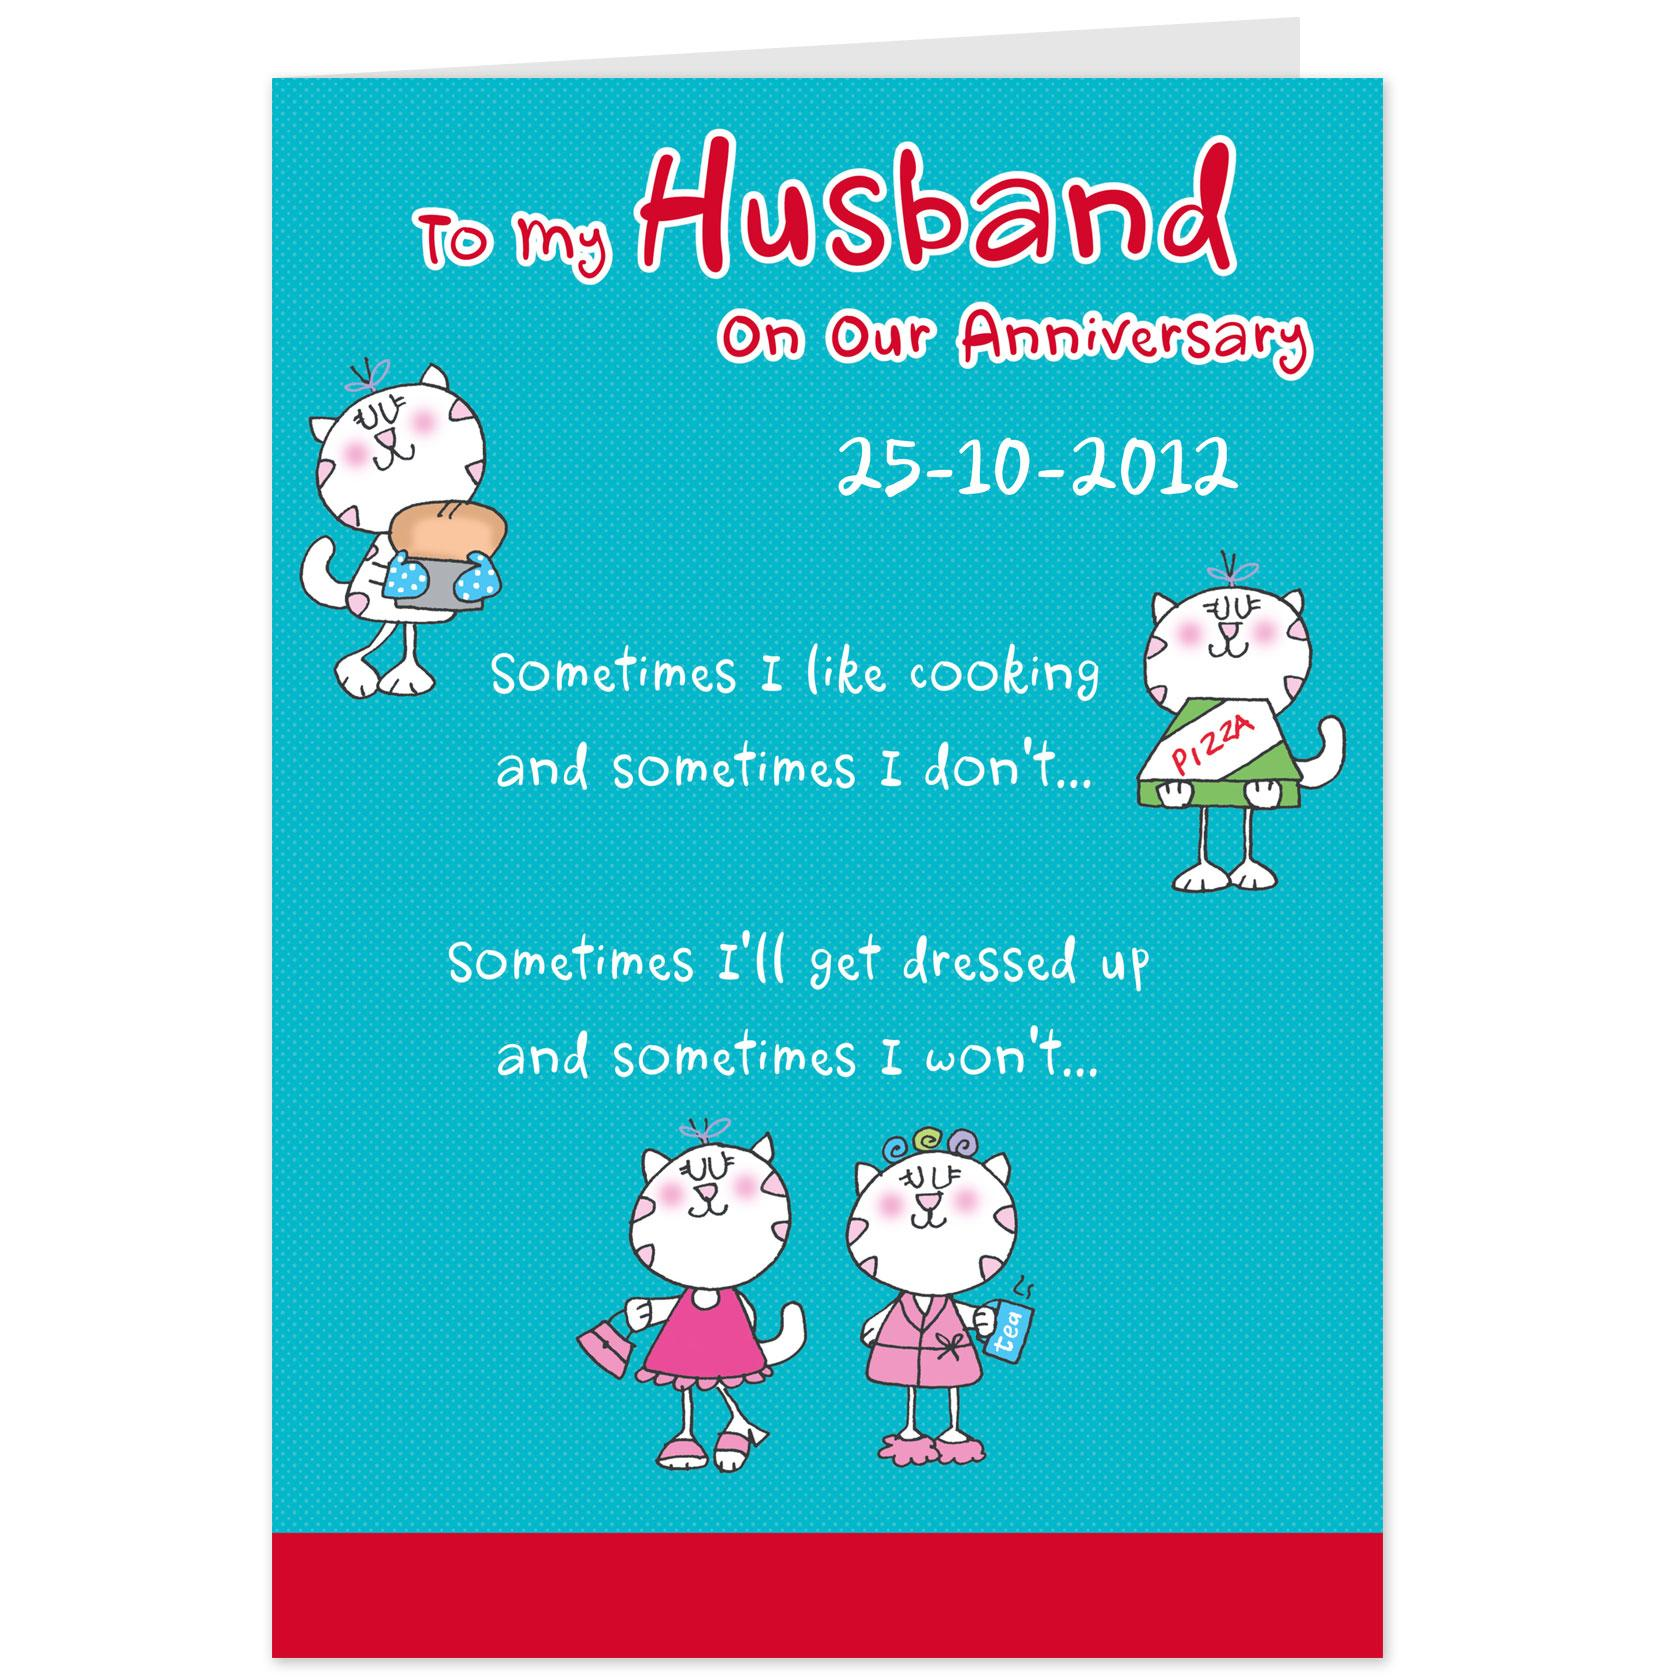 Our Wedding Anniversary Quotes For Husband: Hallmark Anniversary Quotes. QuotesGram